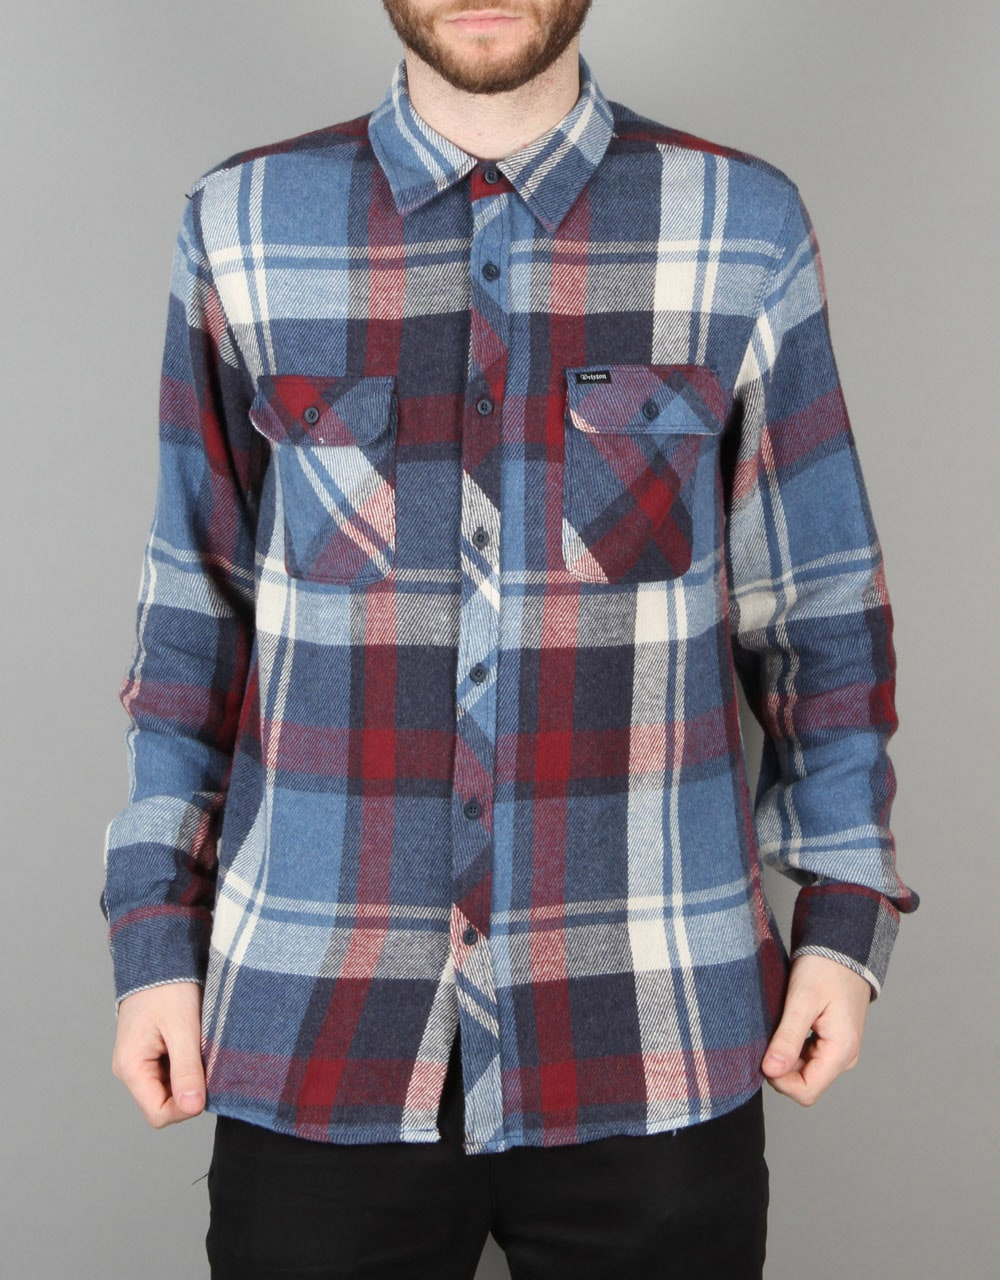 ad20ea2a Brixton Bowsey Flannel L/S Shirt - Blue/Burgundy | Long Sleeve Skate Shirts  | Mens Skateboard Clothing | Route One